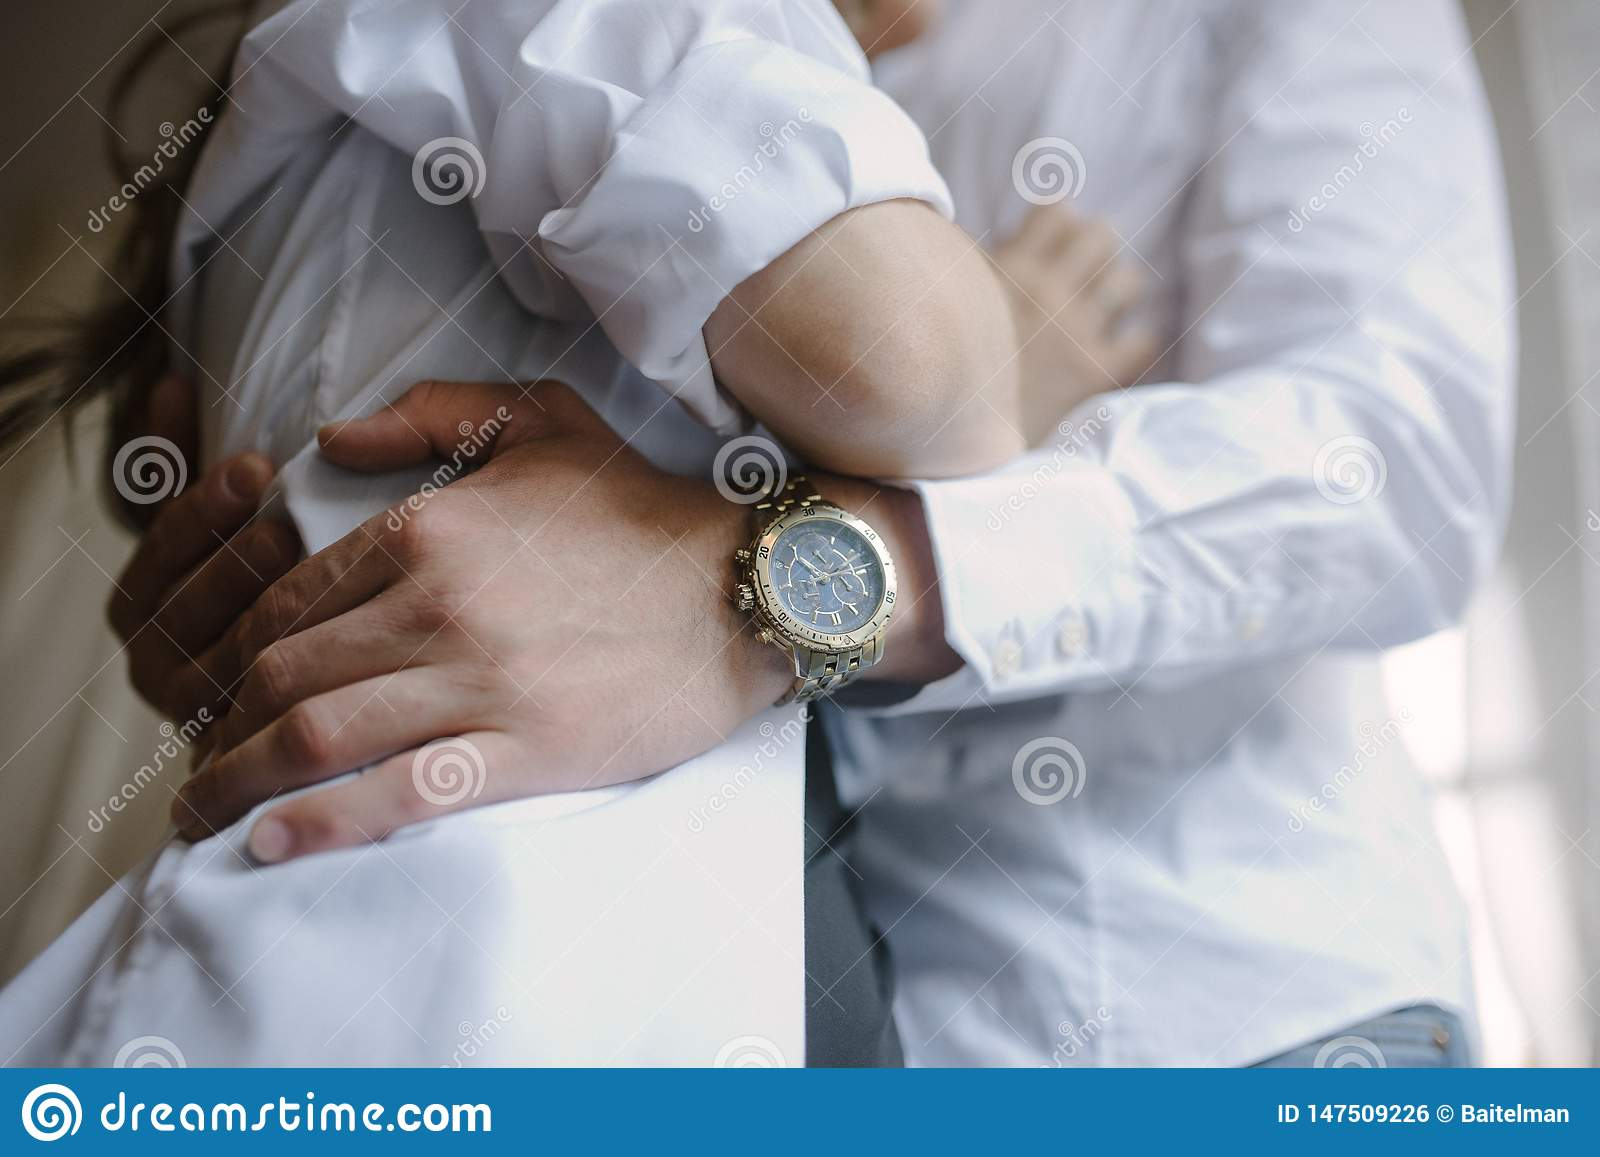 The groom in a suit hugs the bride in a wedding dress